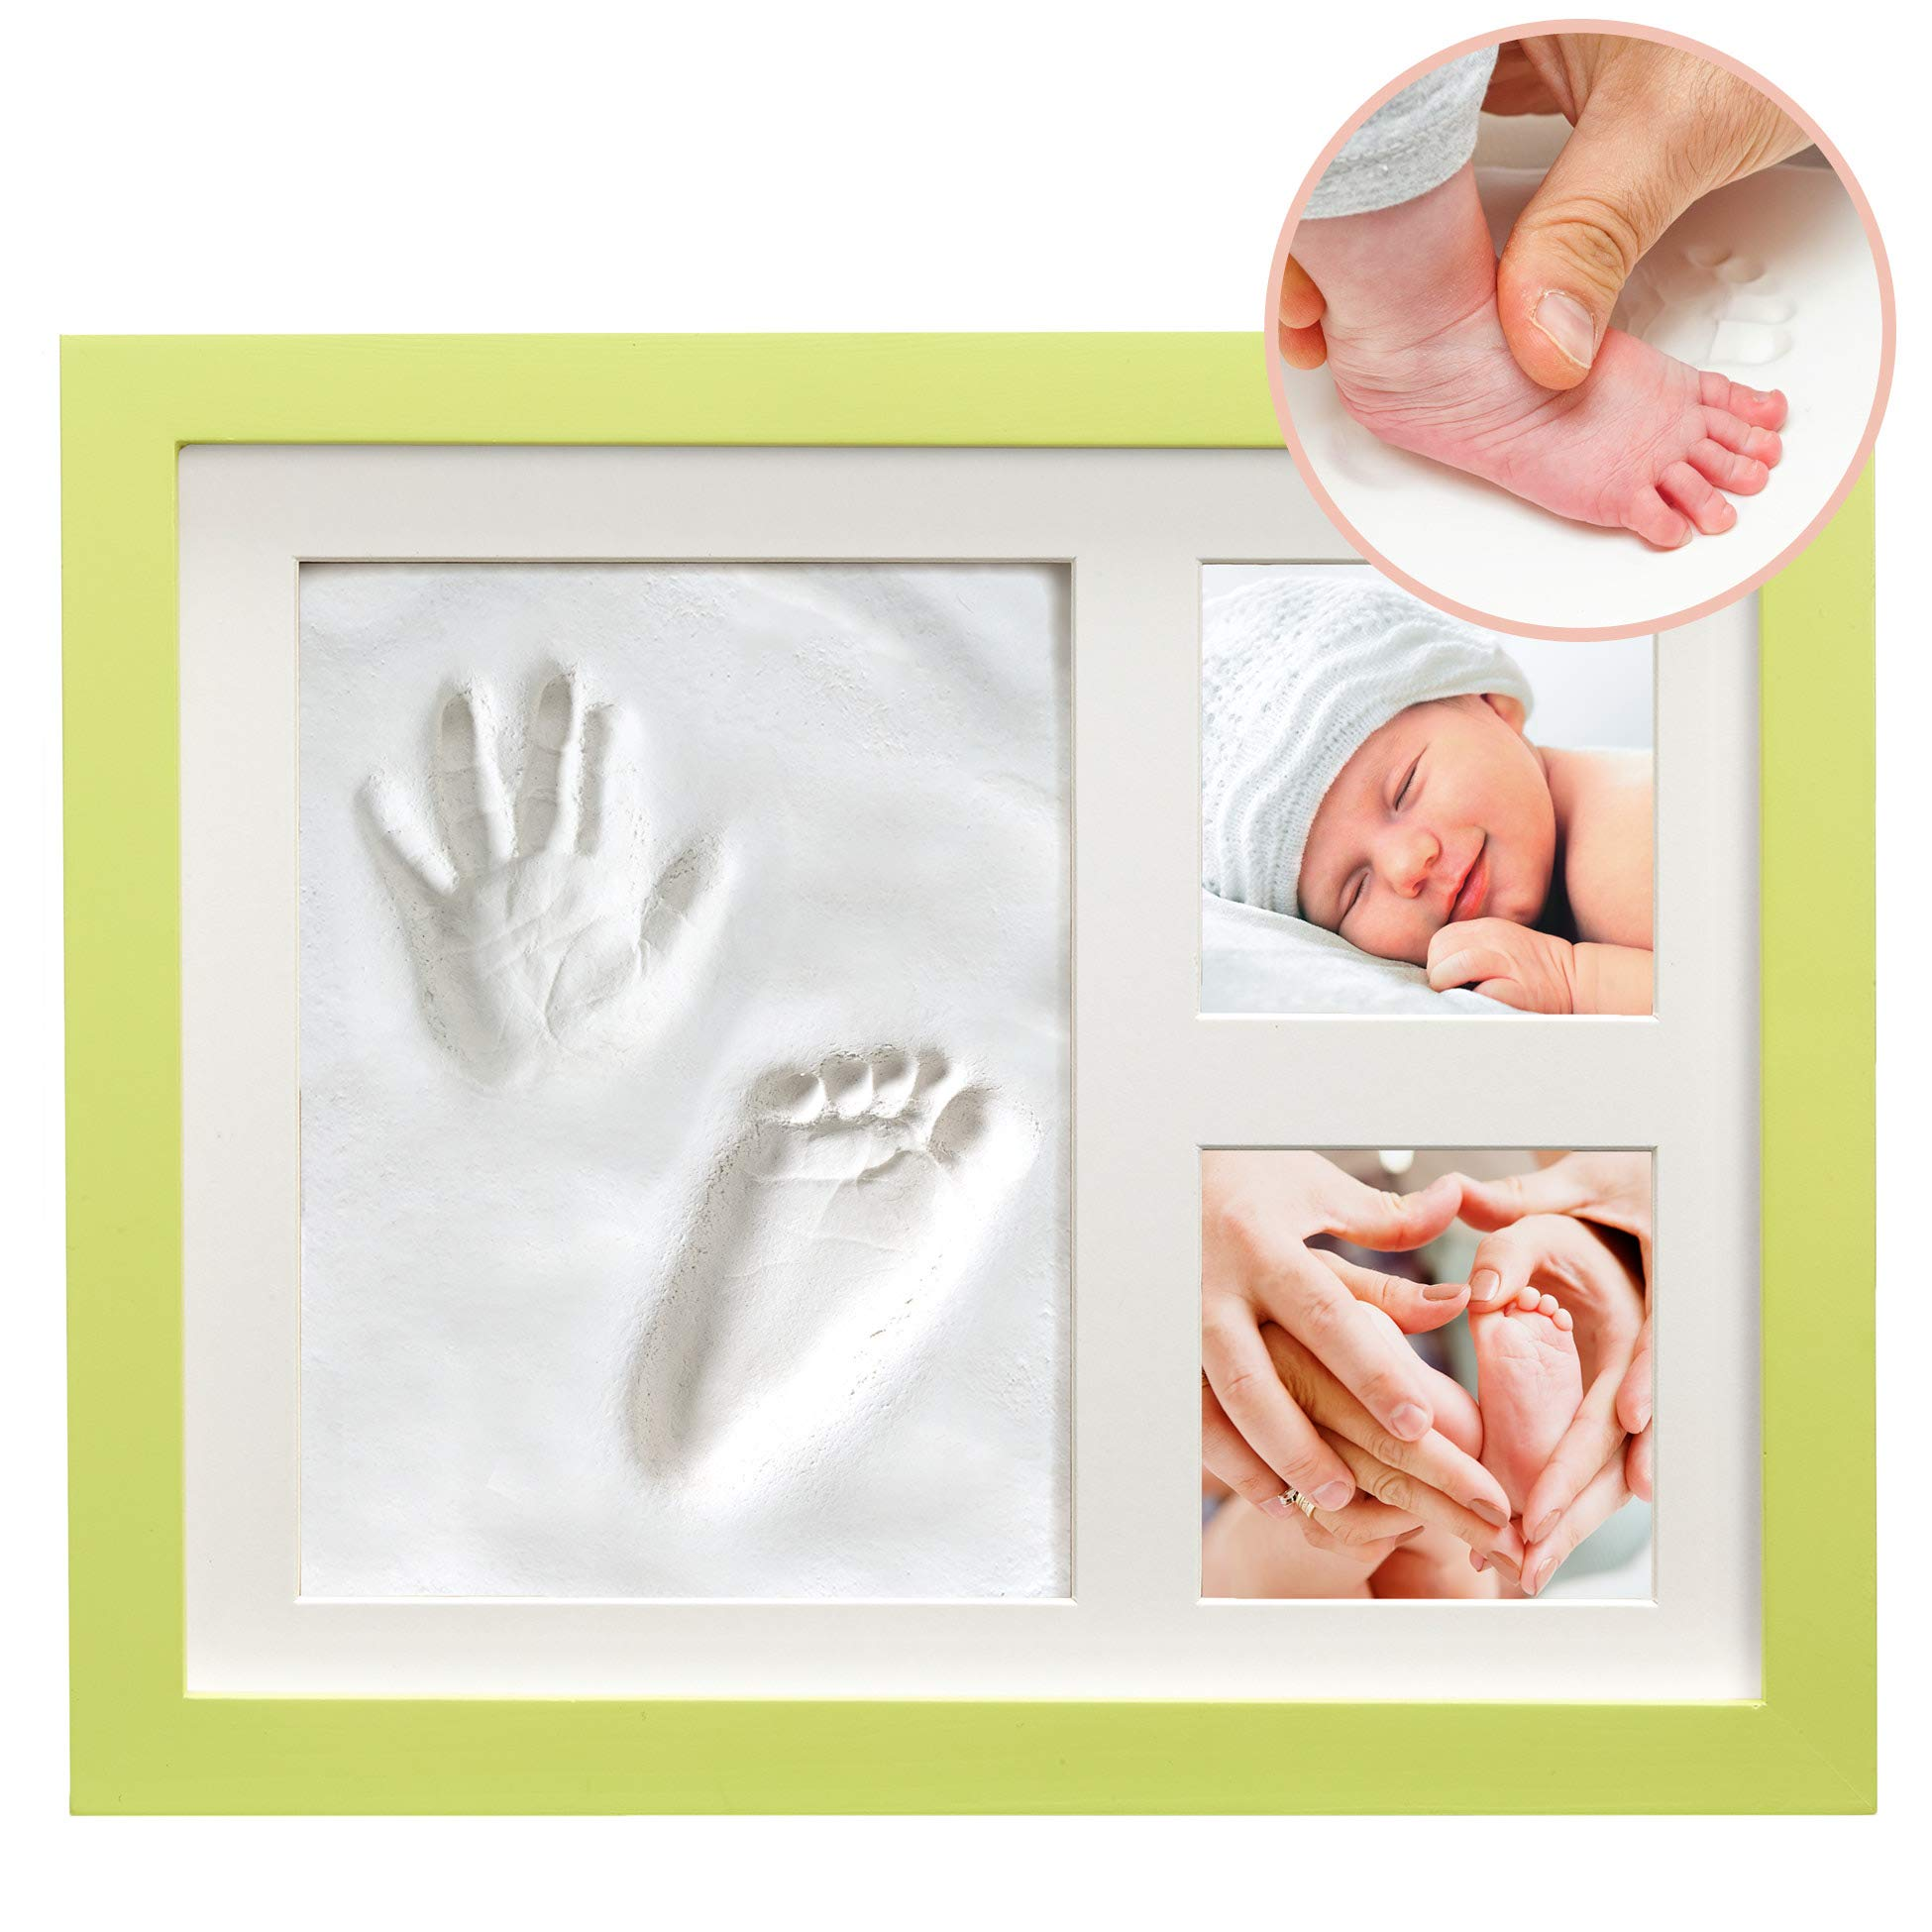 """Lime Clay Hand/Footprint Photo Frame for Babies, Kids, and Pets – Includes 9"""" x 11"""" Colored Wood Photo Frame, Roller, Mounting Hardware, and Instructions -''Pose''ies"""